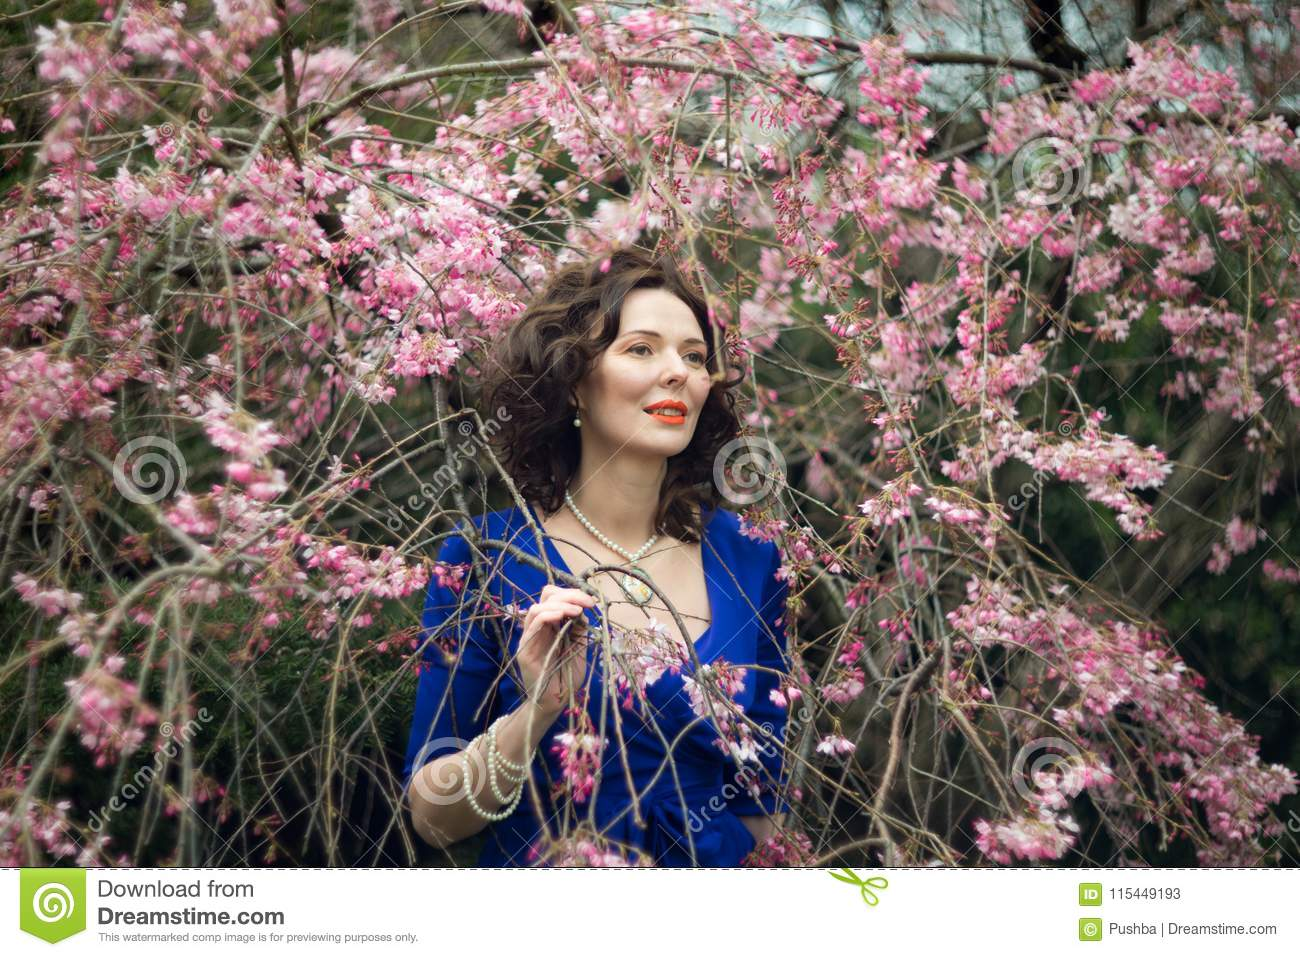 Portrait of a middle-aged brunette in a blue dress next to a cherry blossom